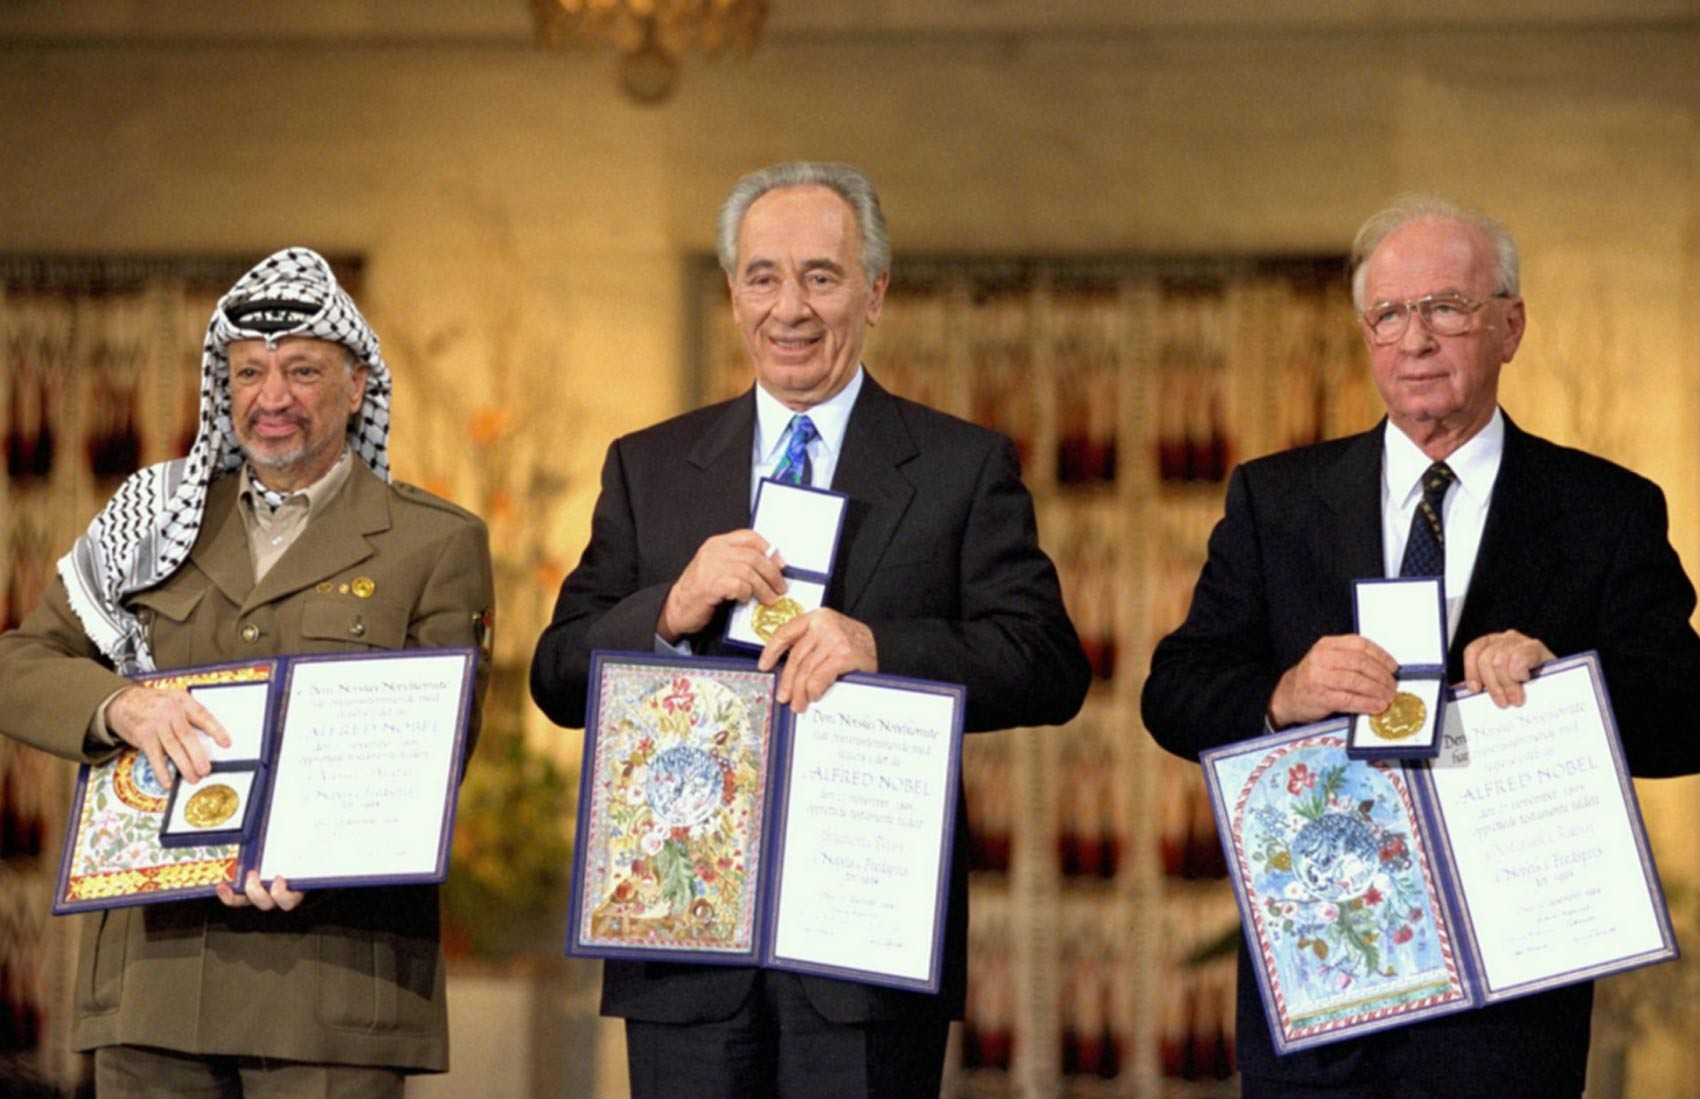 Shimon Peres (centro) recebe o Nobel da Paz com Yasser Arafat e Yitzak Rabin (Foto: Israel/Government Press Office)